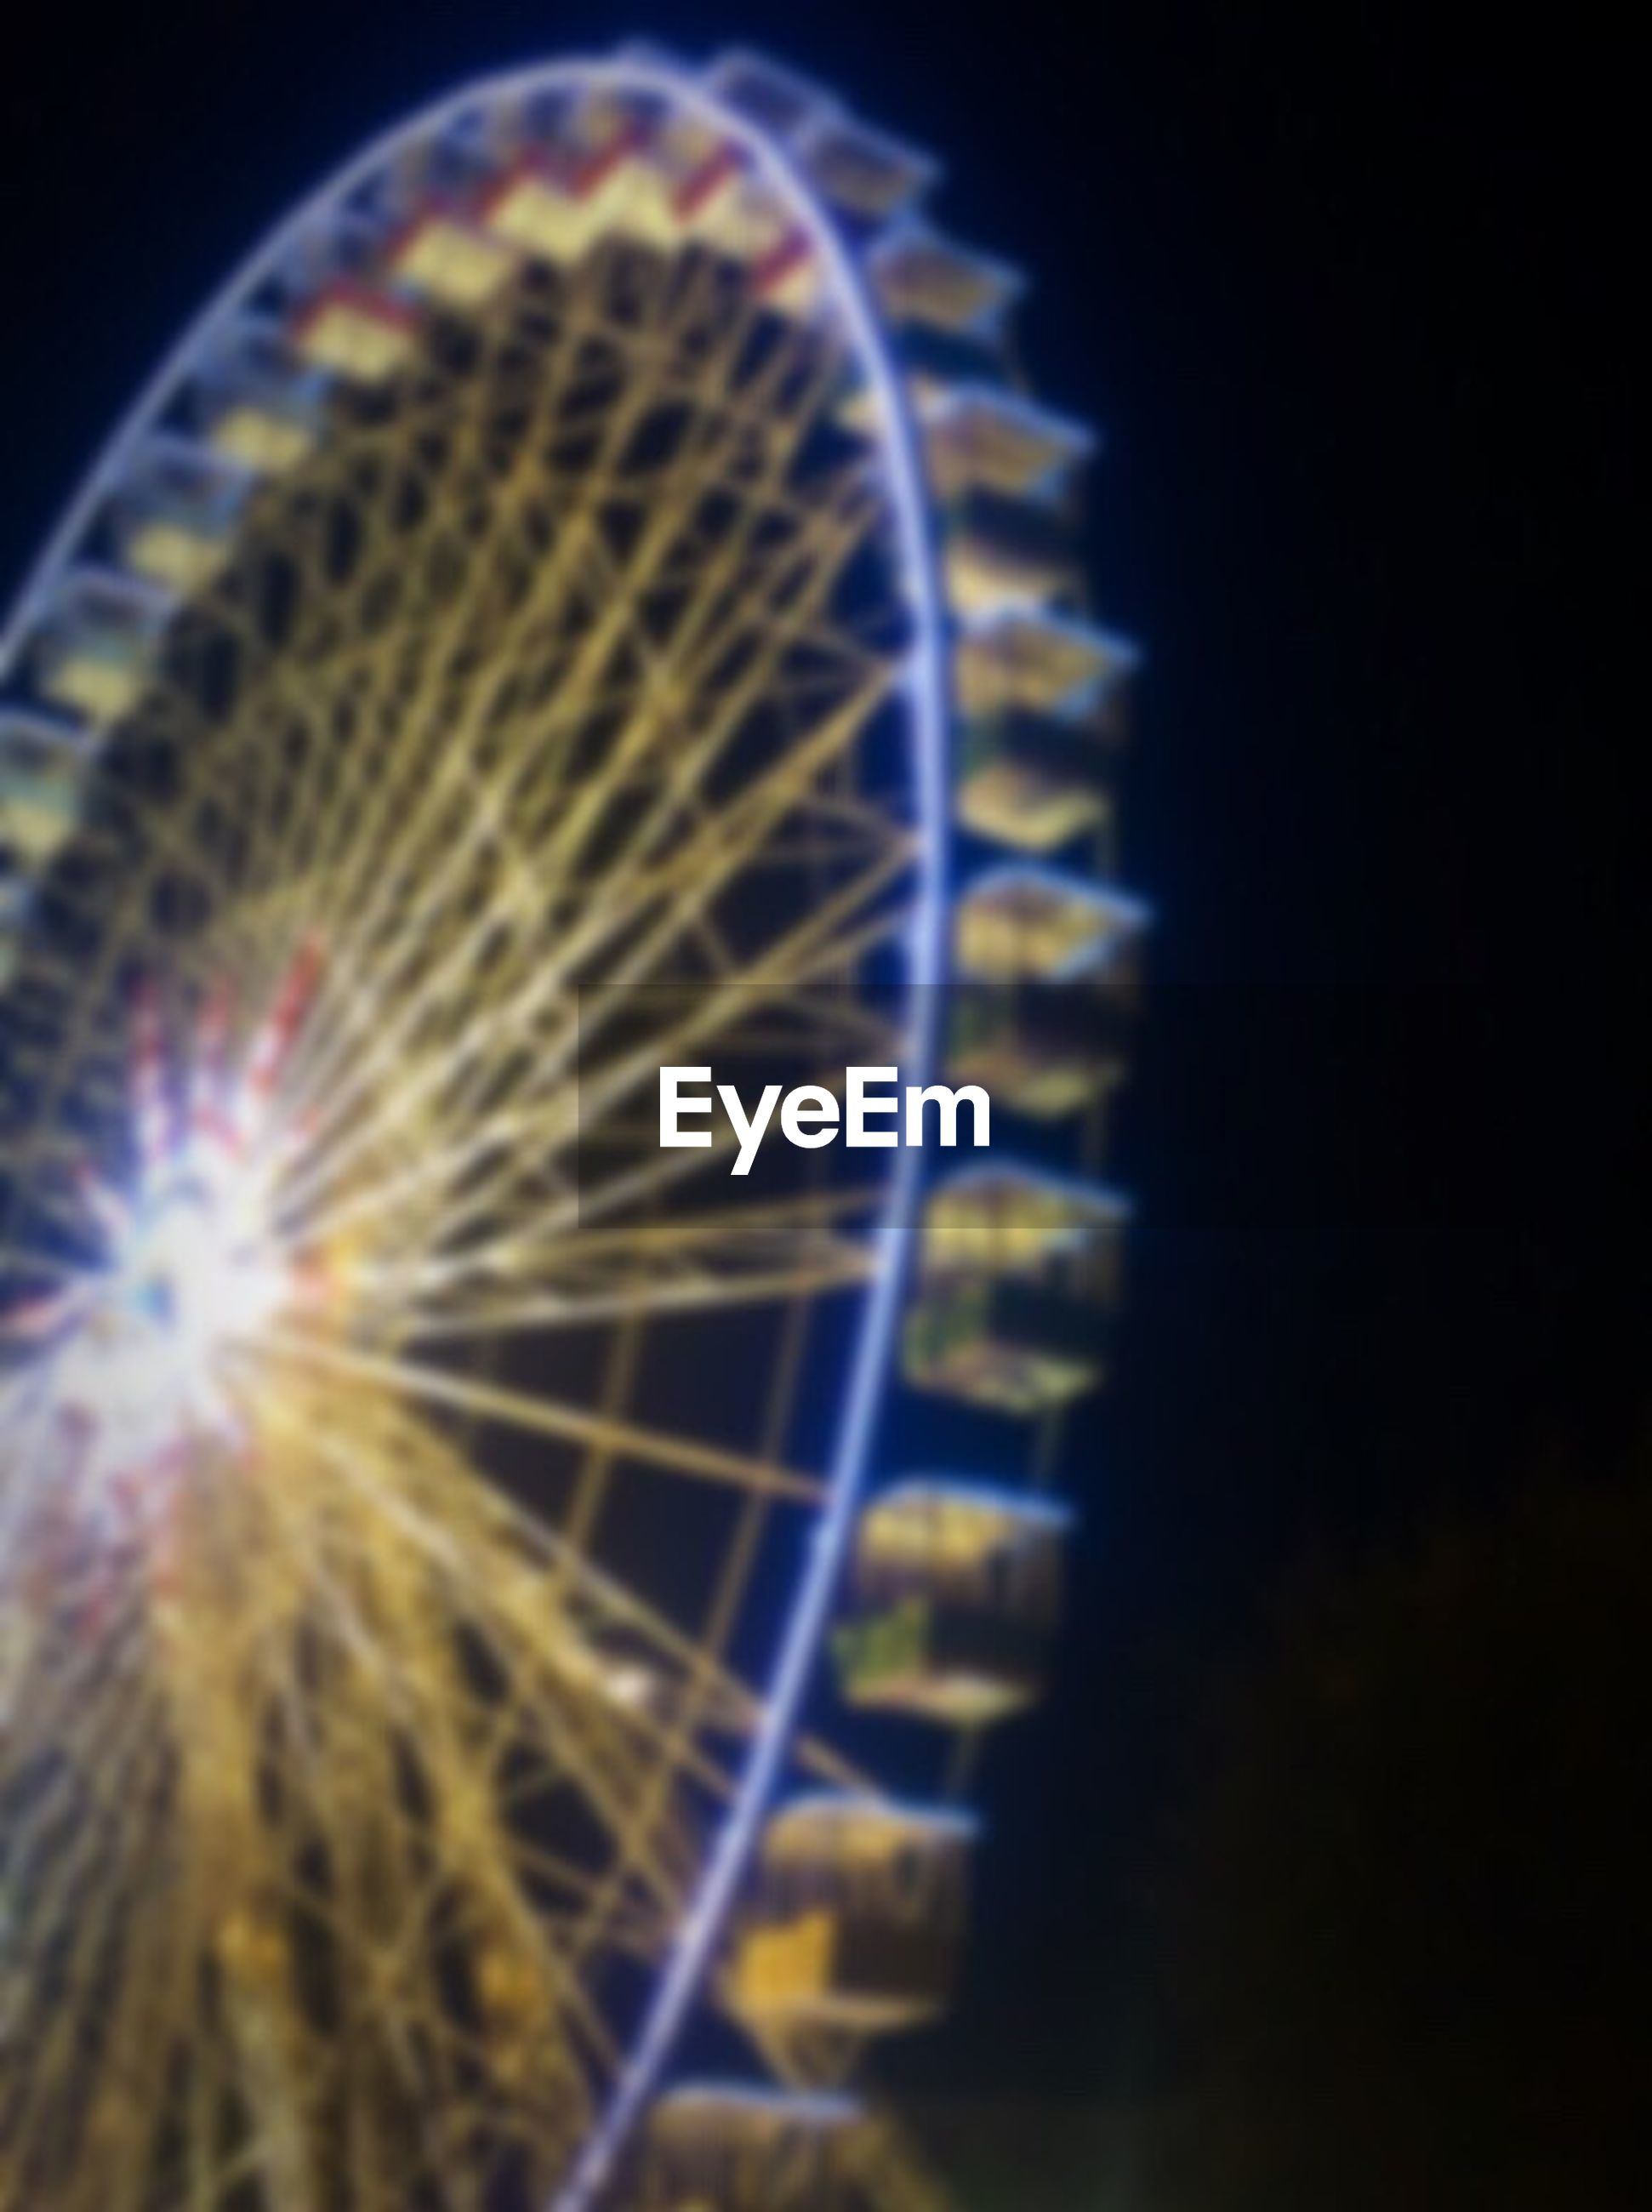 ferris wheel, arts culture and entertainment, amusement park ride, amusement park, night, illuminated, low angle view, sky, circle, motion, outdoors, built structure, long exposure, no people, spinning, glowing, clear sky, blurred motion, architecture, pattern